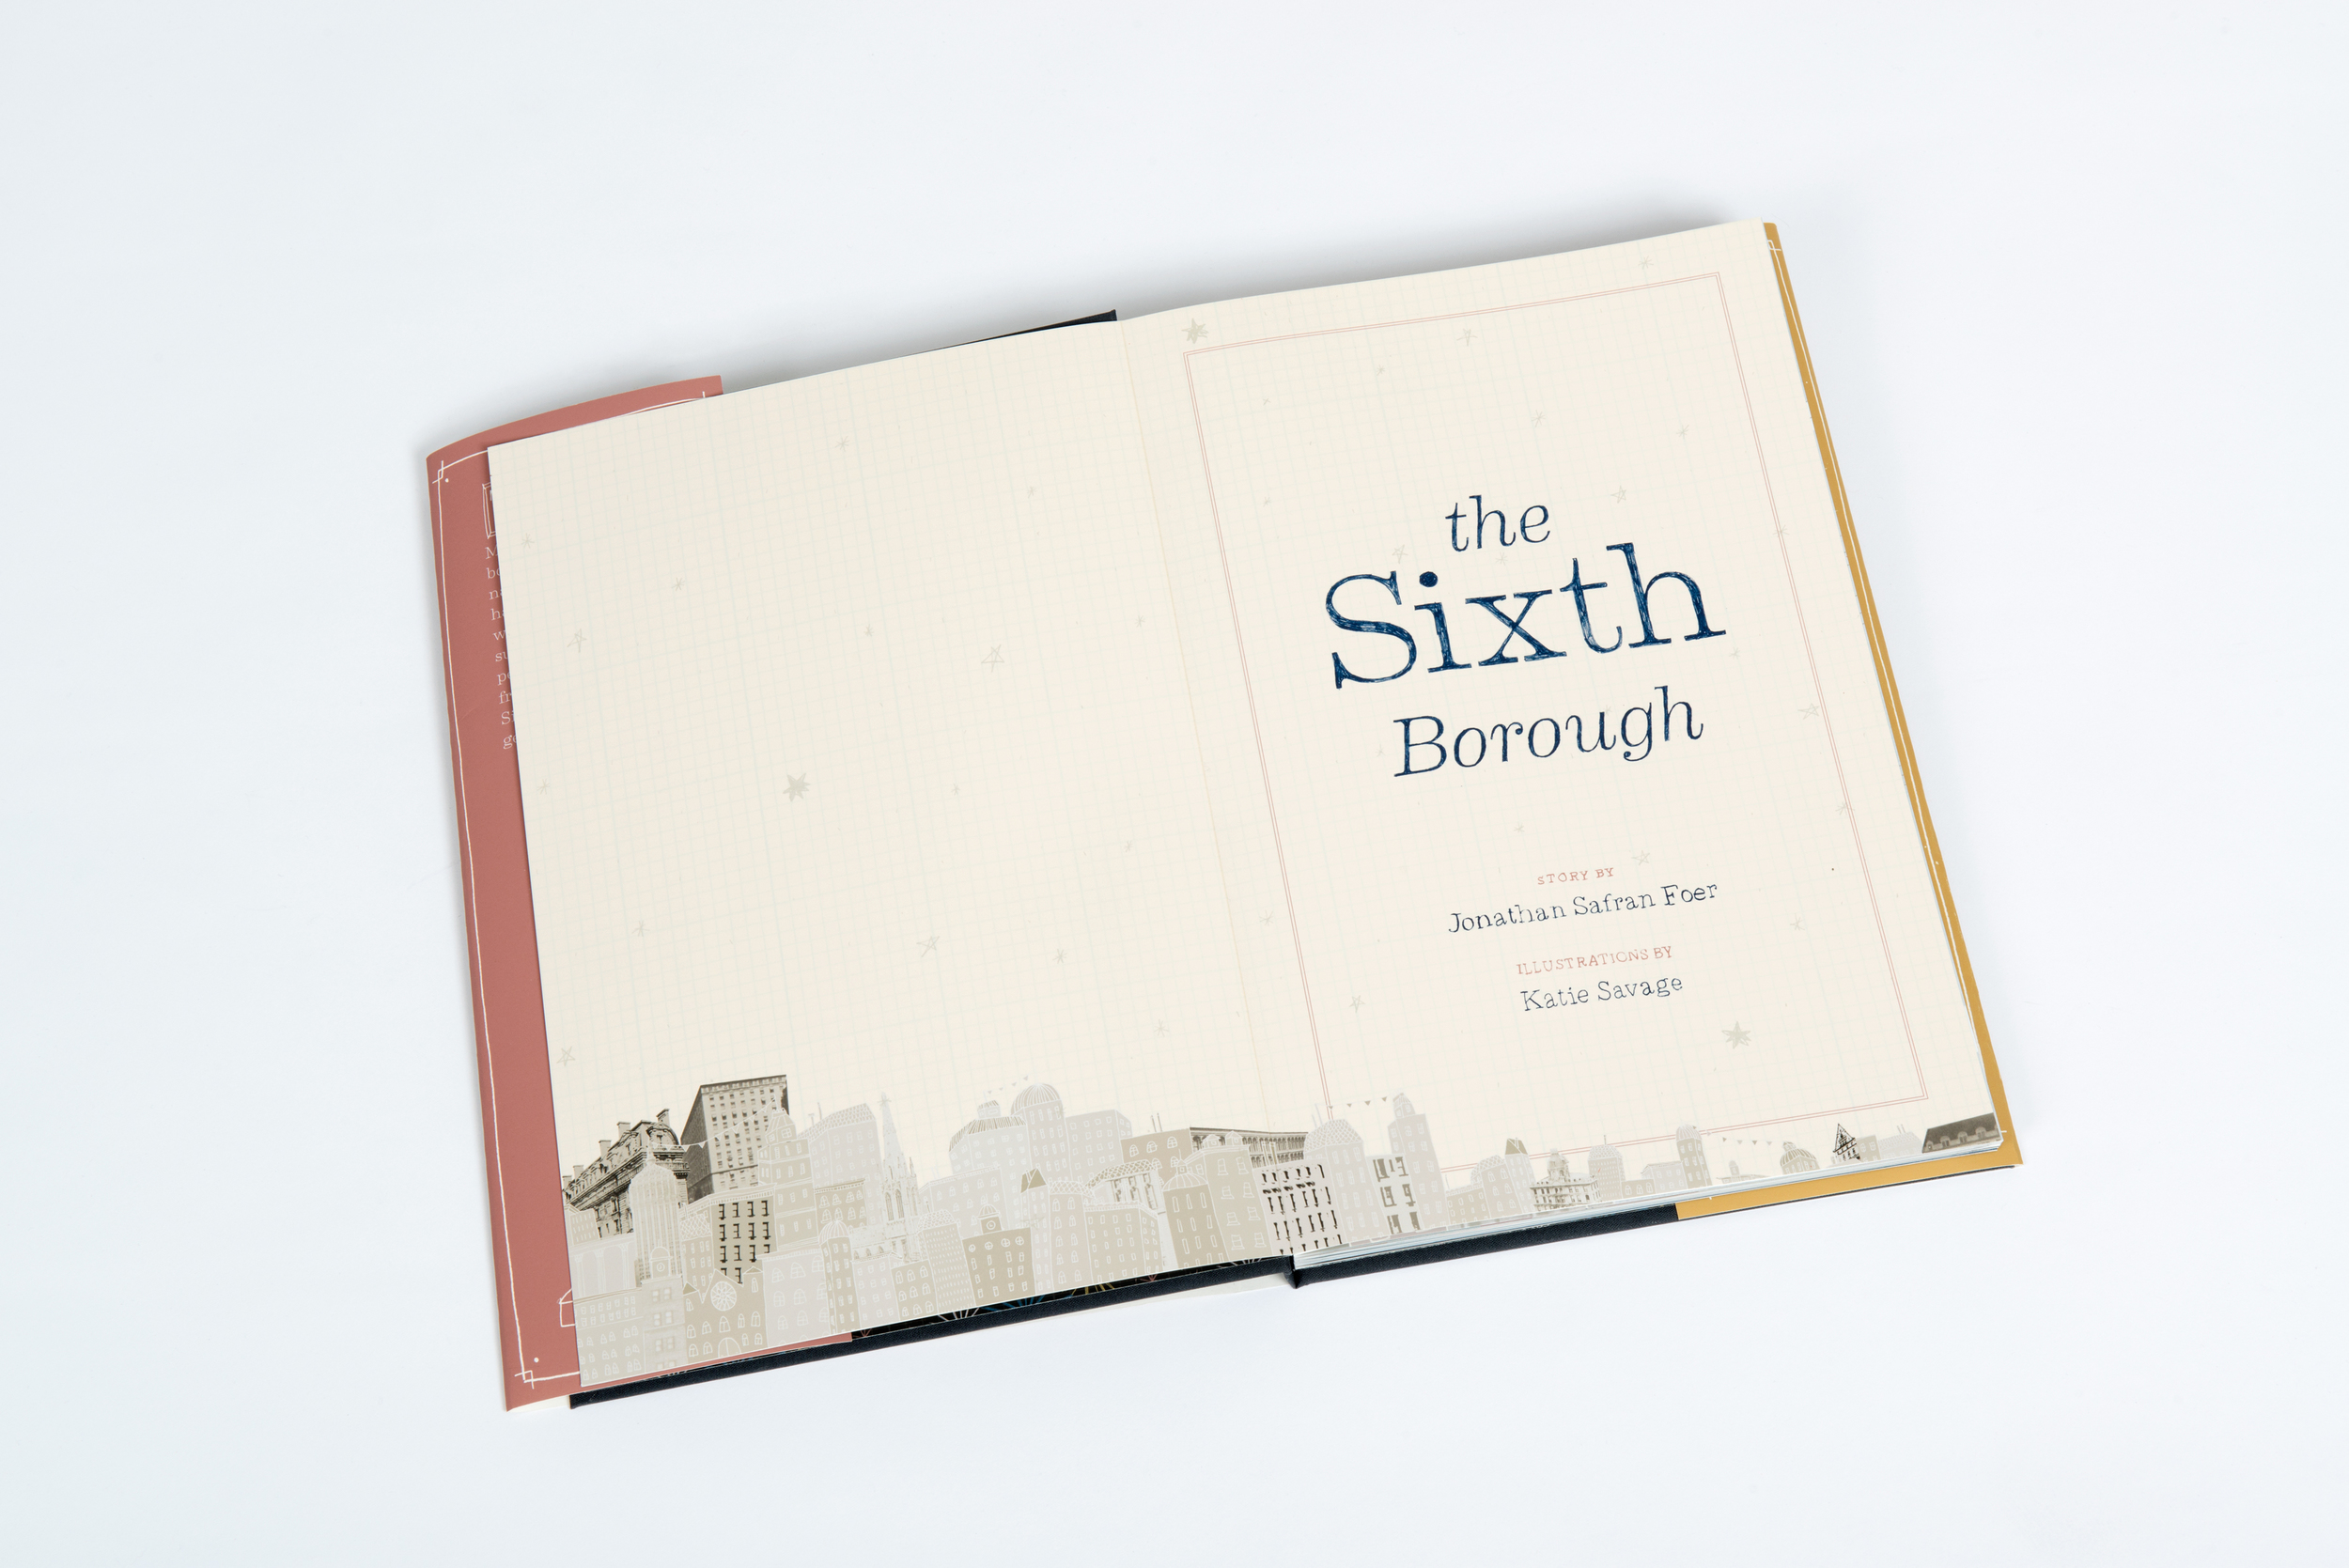 6borough-1.jpg